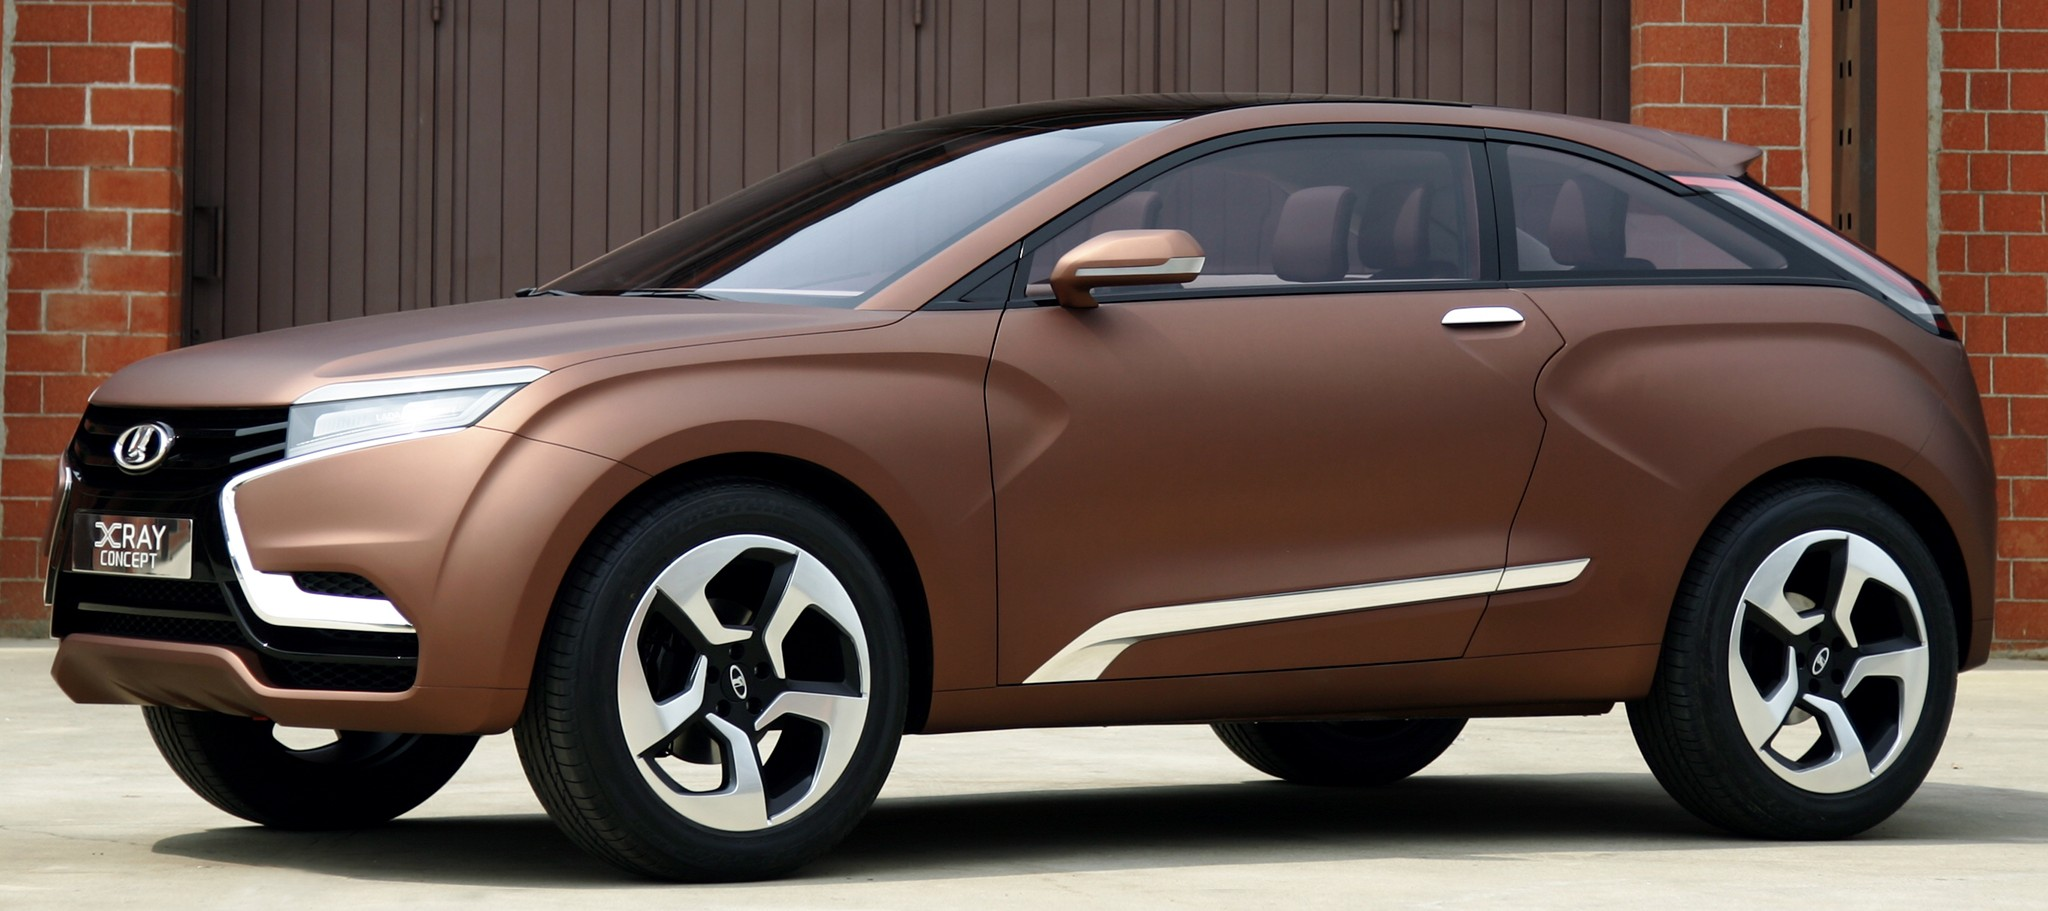 Lada aims to copy Kia's success with style revolution ...